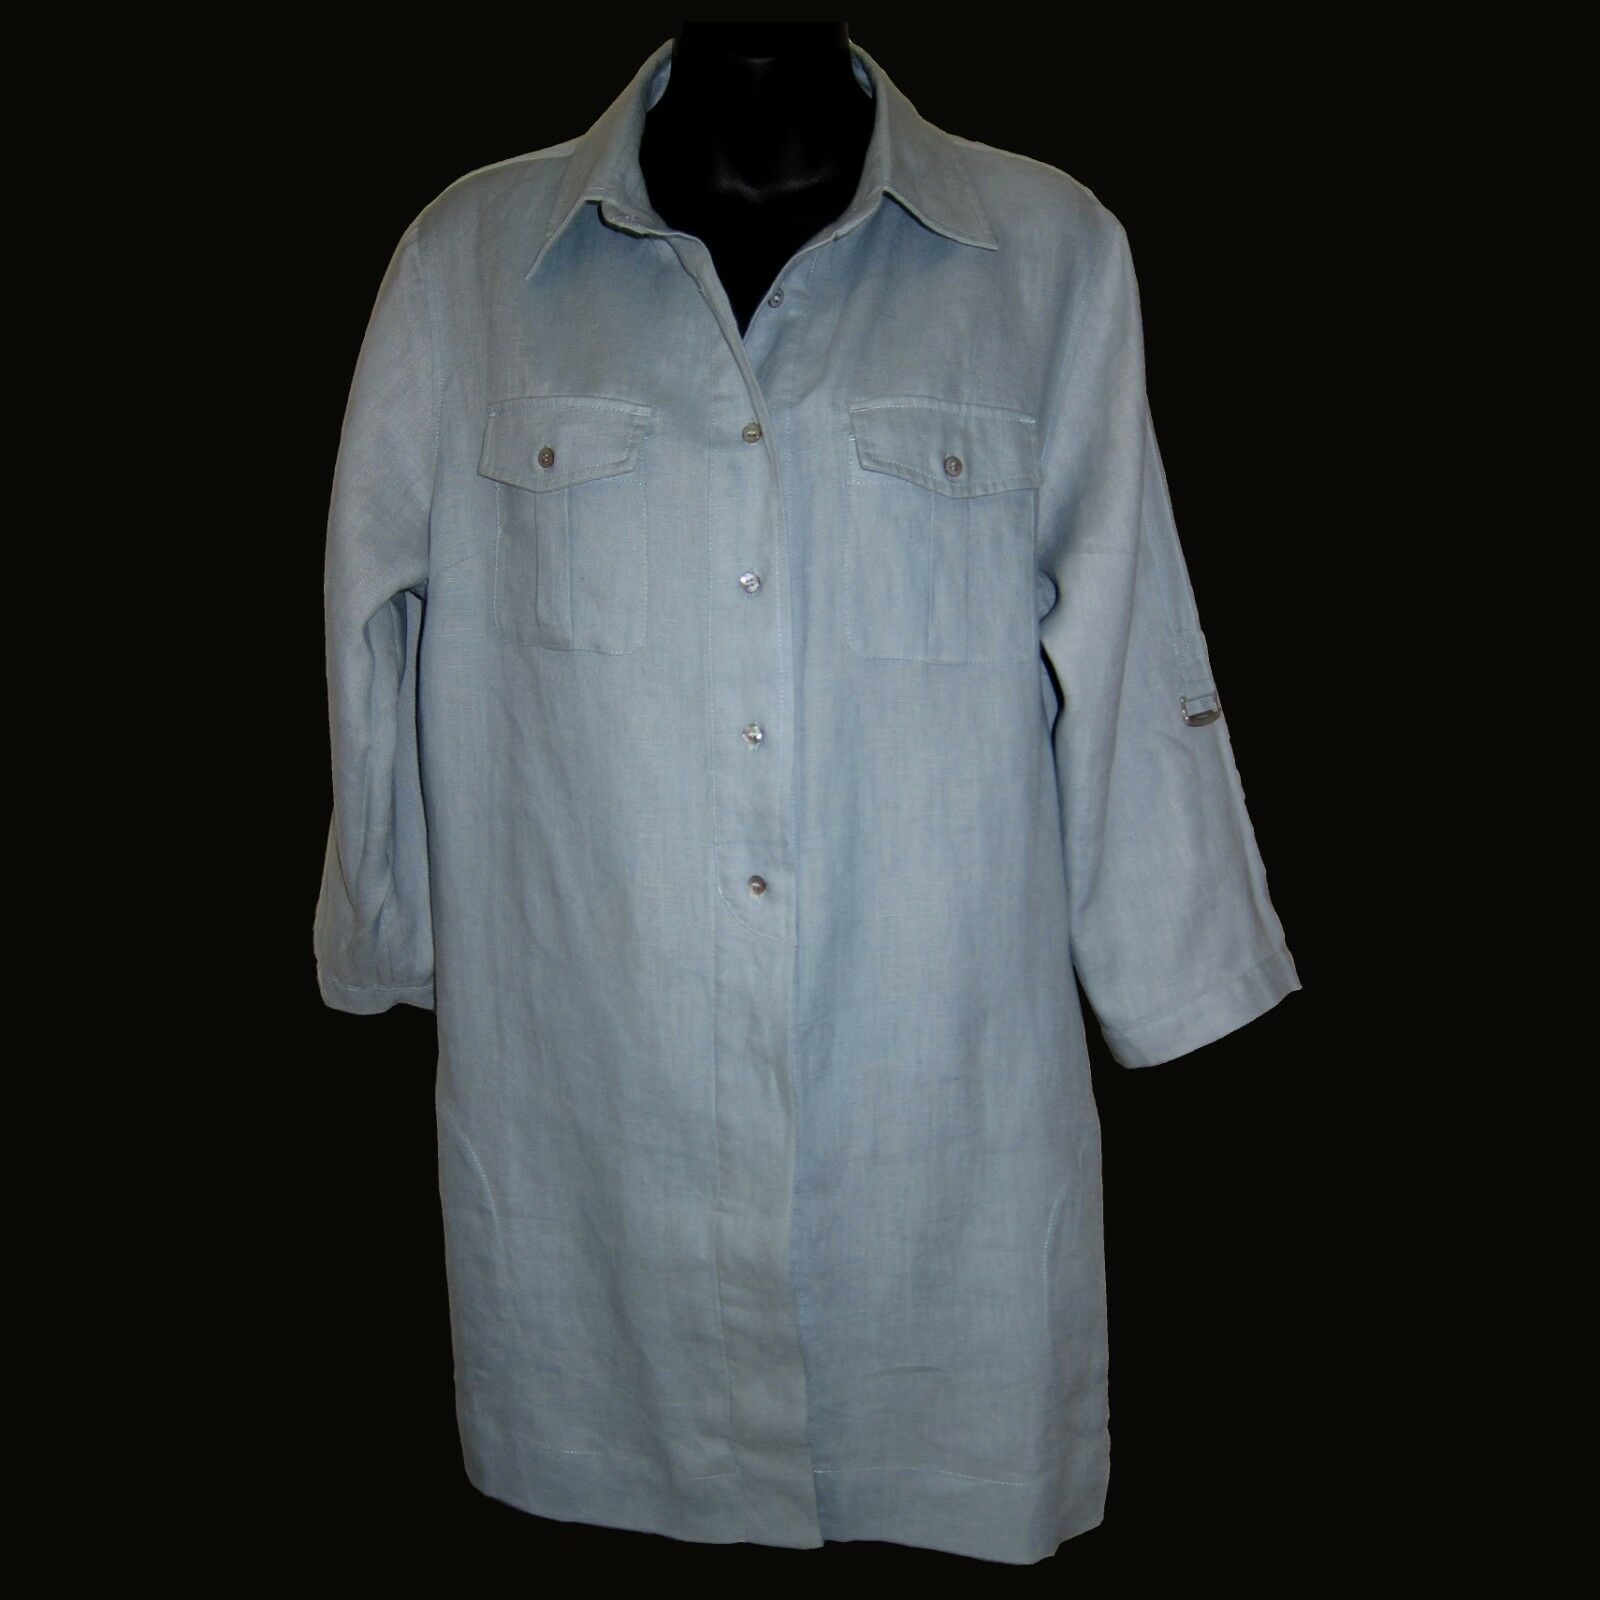 Soft Surroundings Sz L Linen Safari Tunic Shirt Roll Tab Sleeve Seafoam Grün